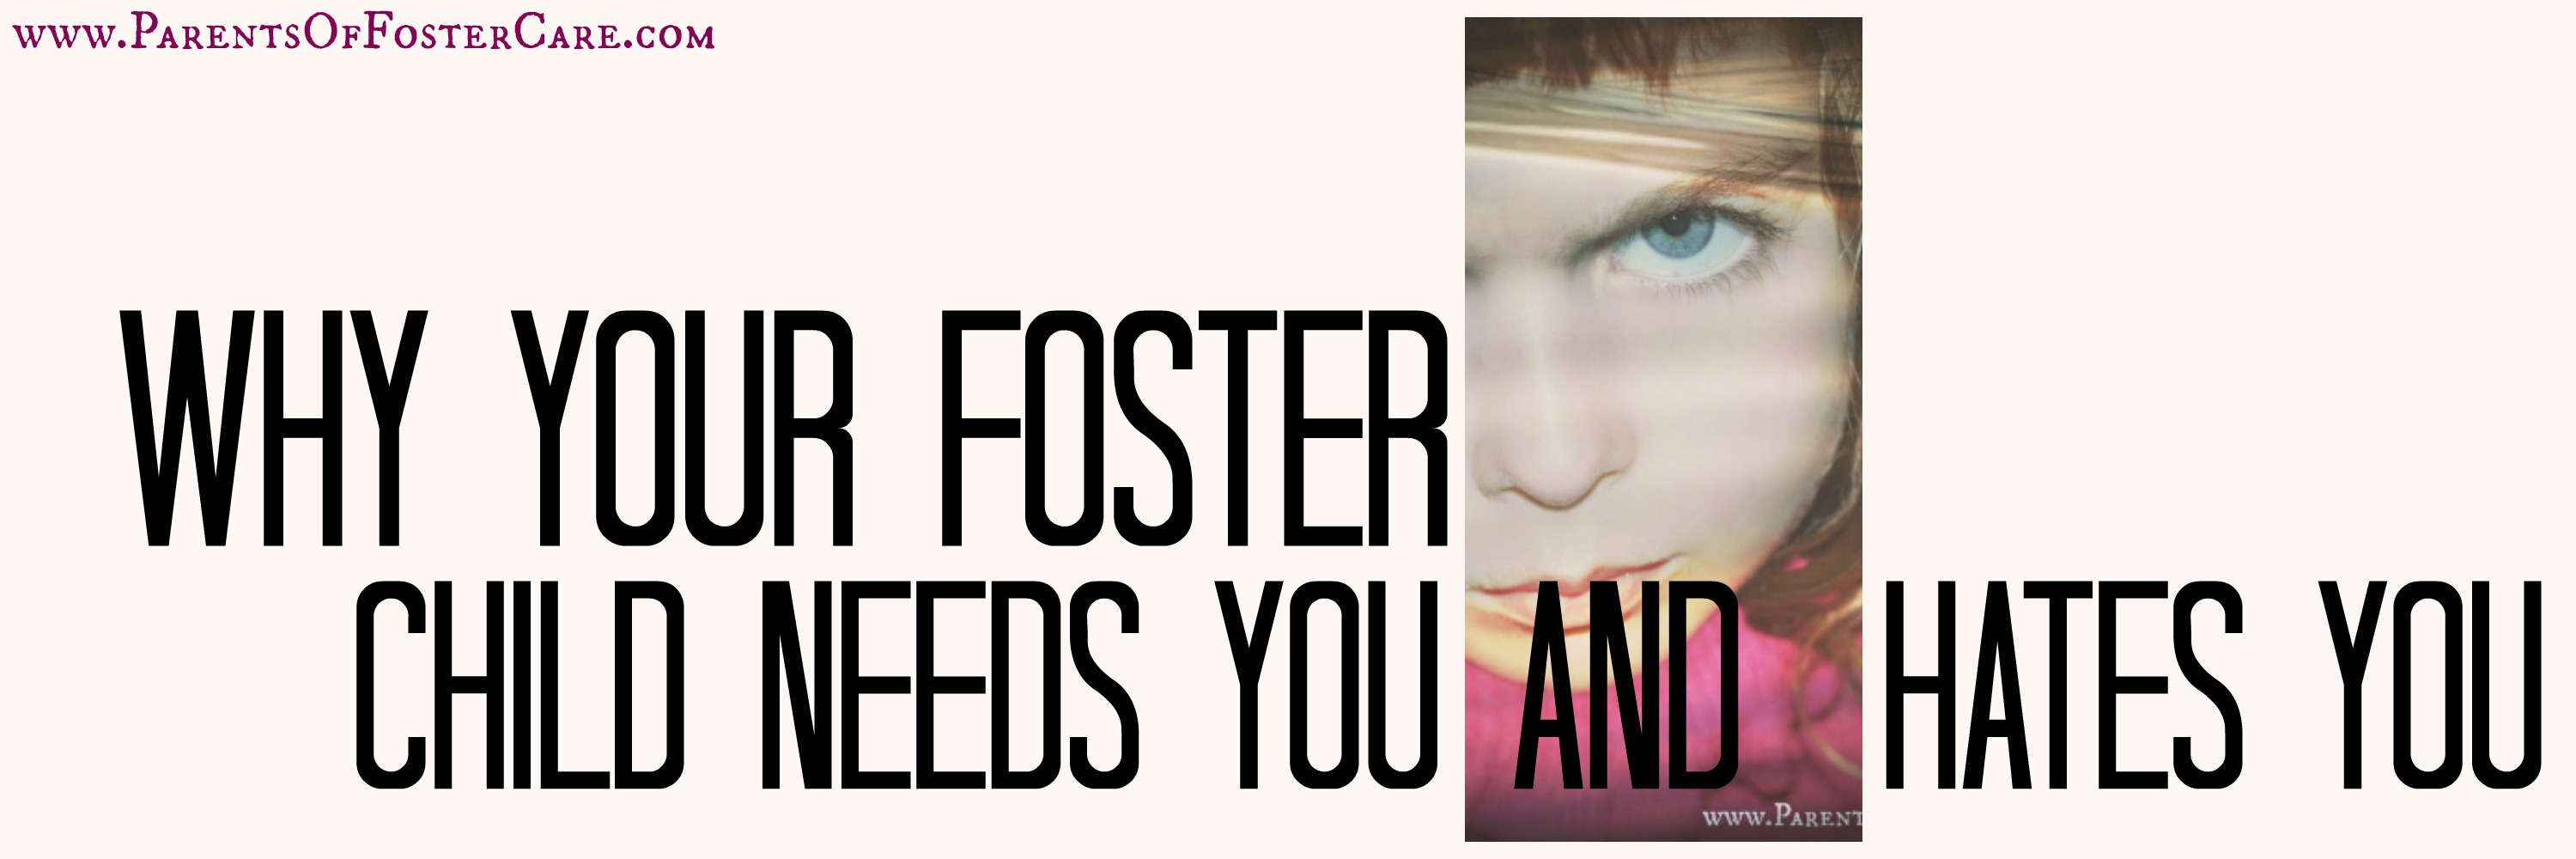 Why Your Foster Child Needs You and Hates You Header